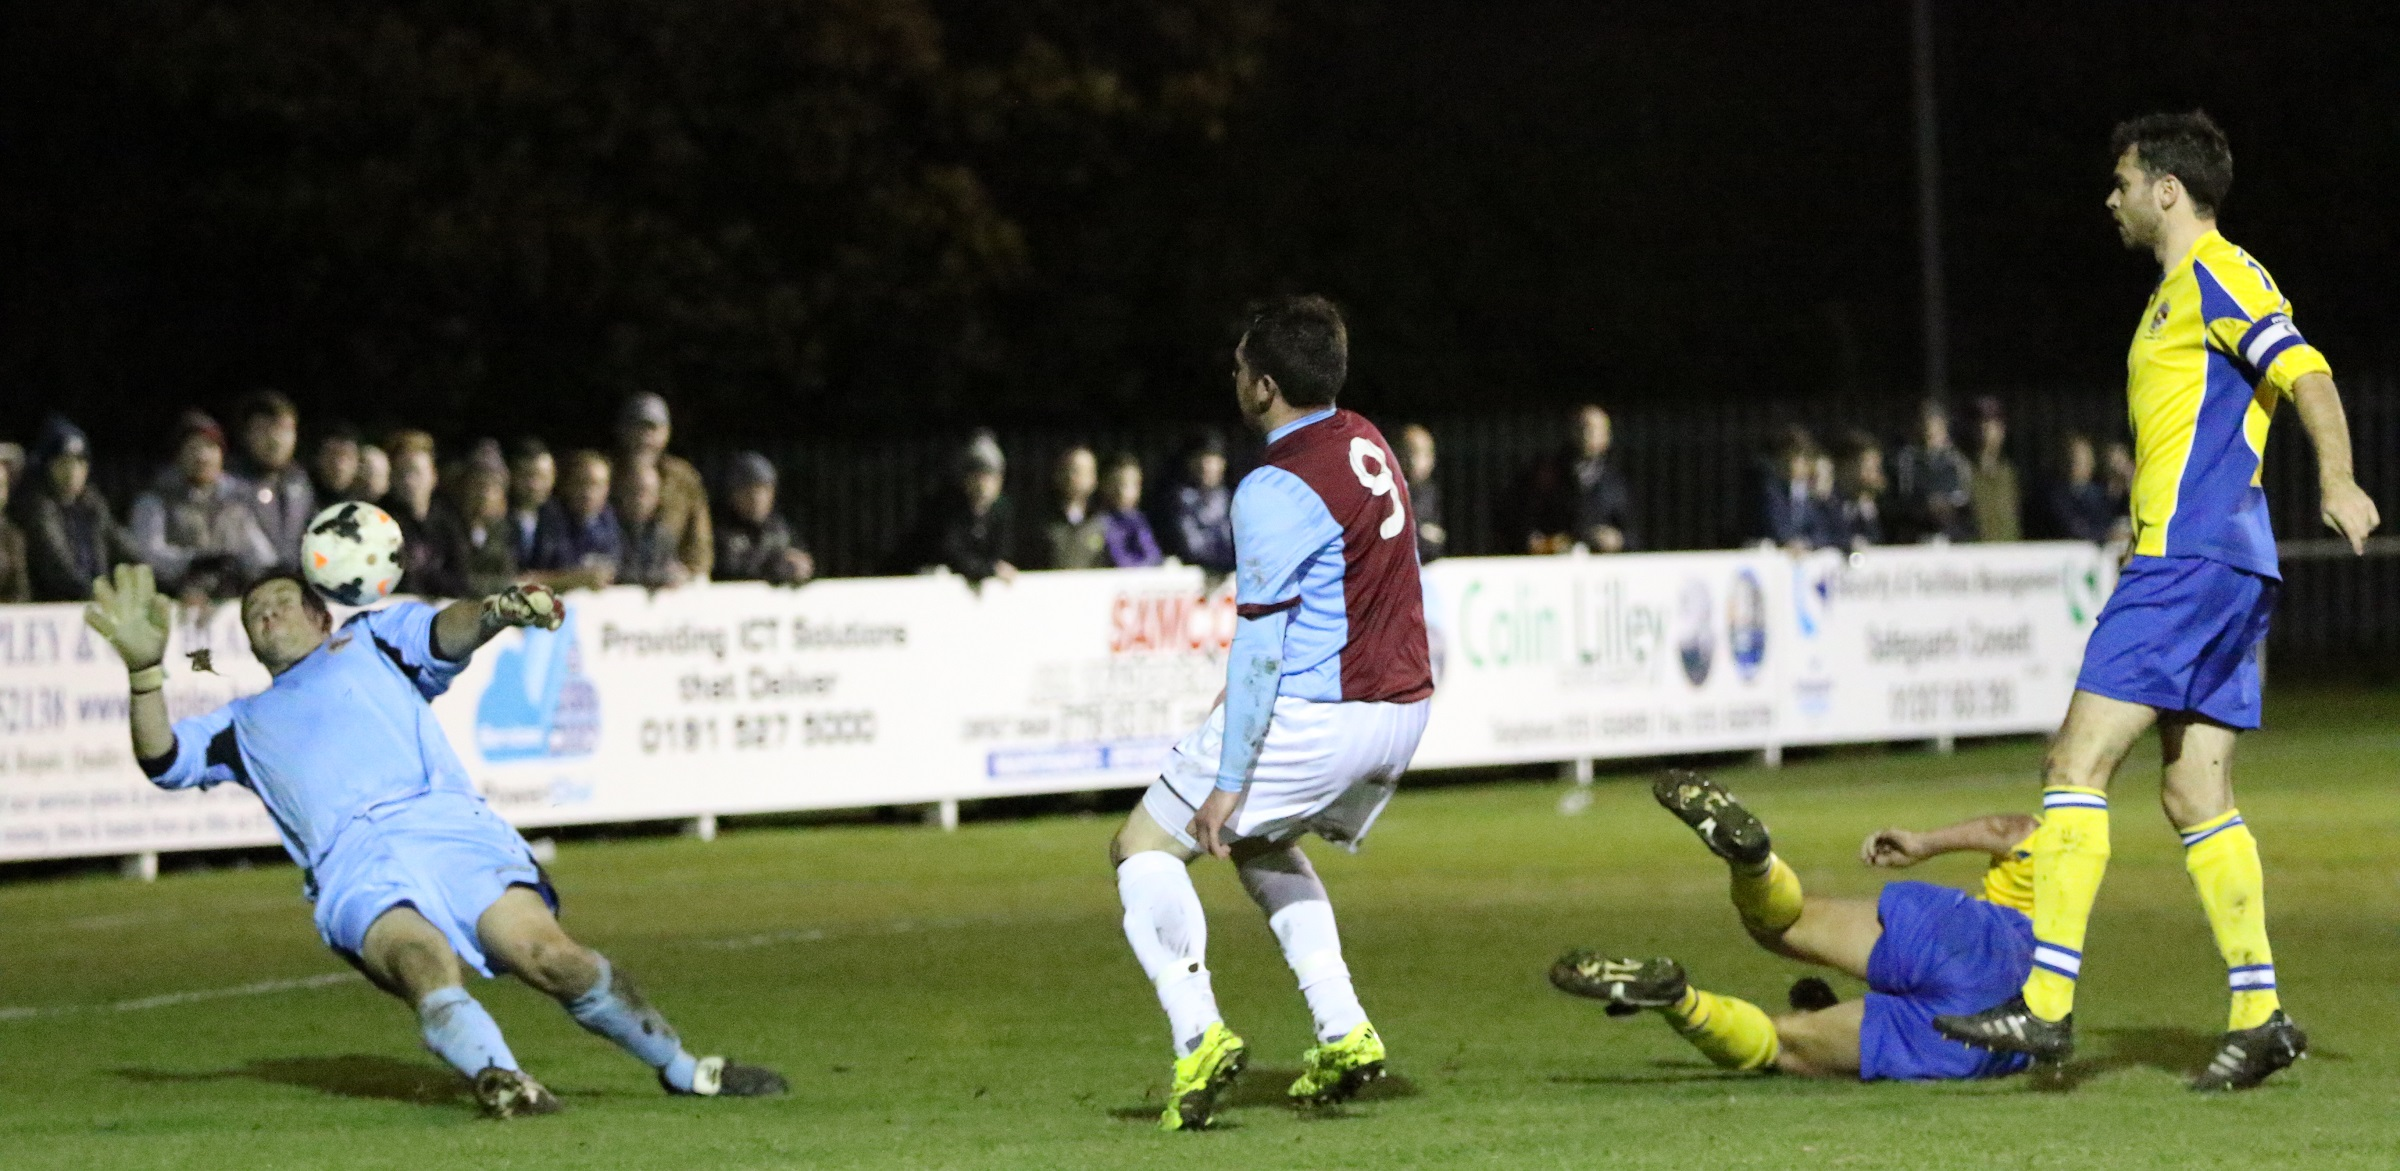 HIGHLIGHTS: South Shields 2-1 Chester-le-Street